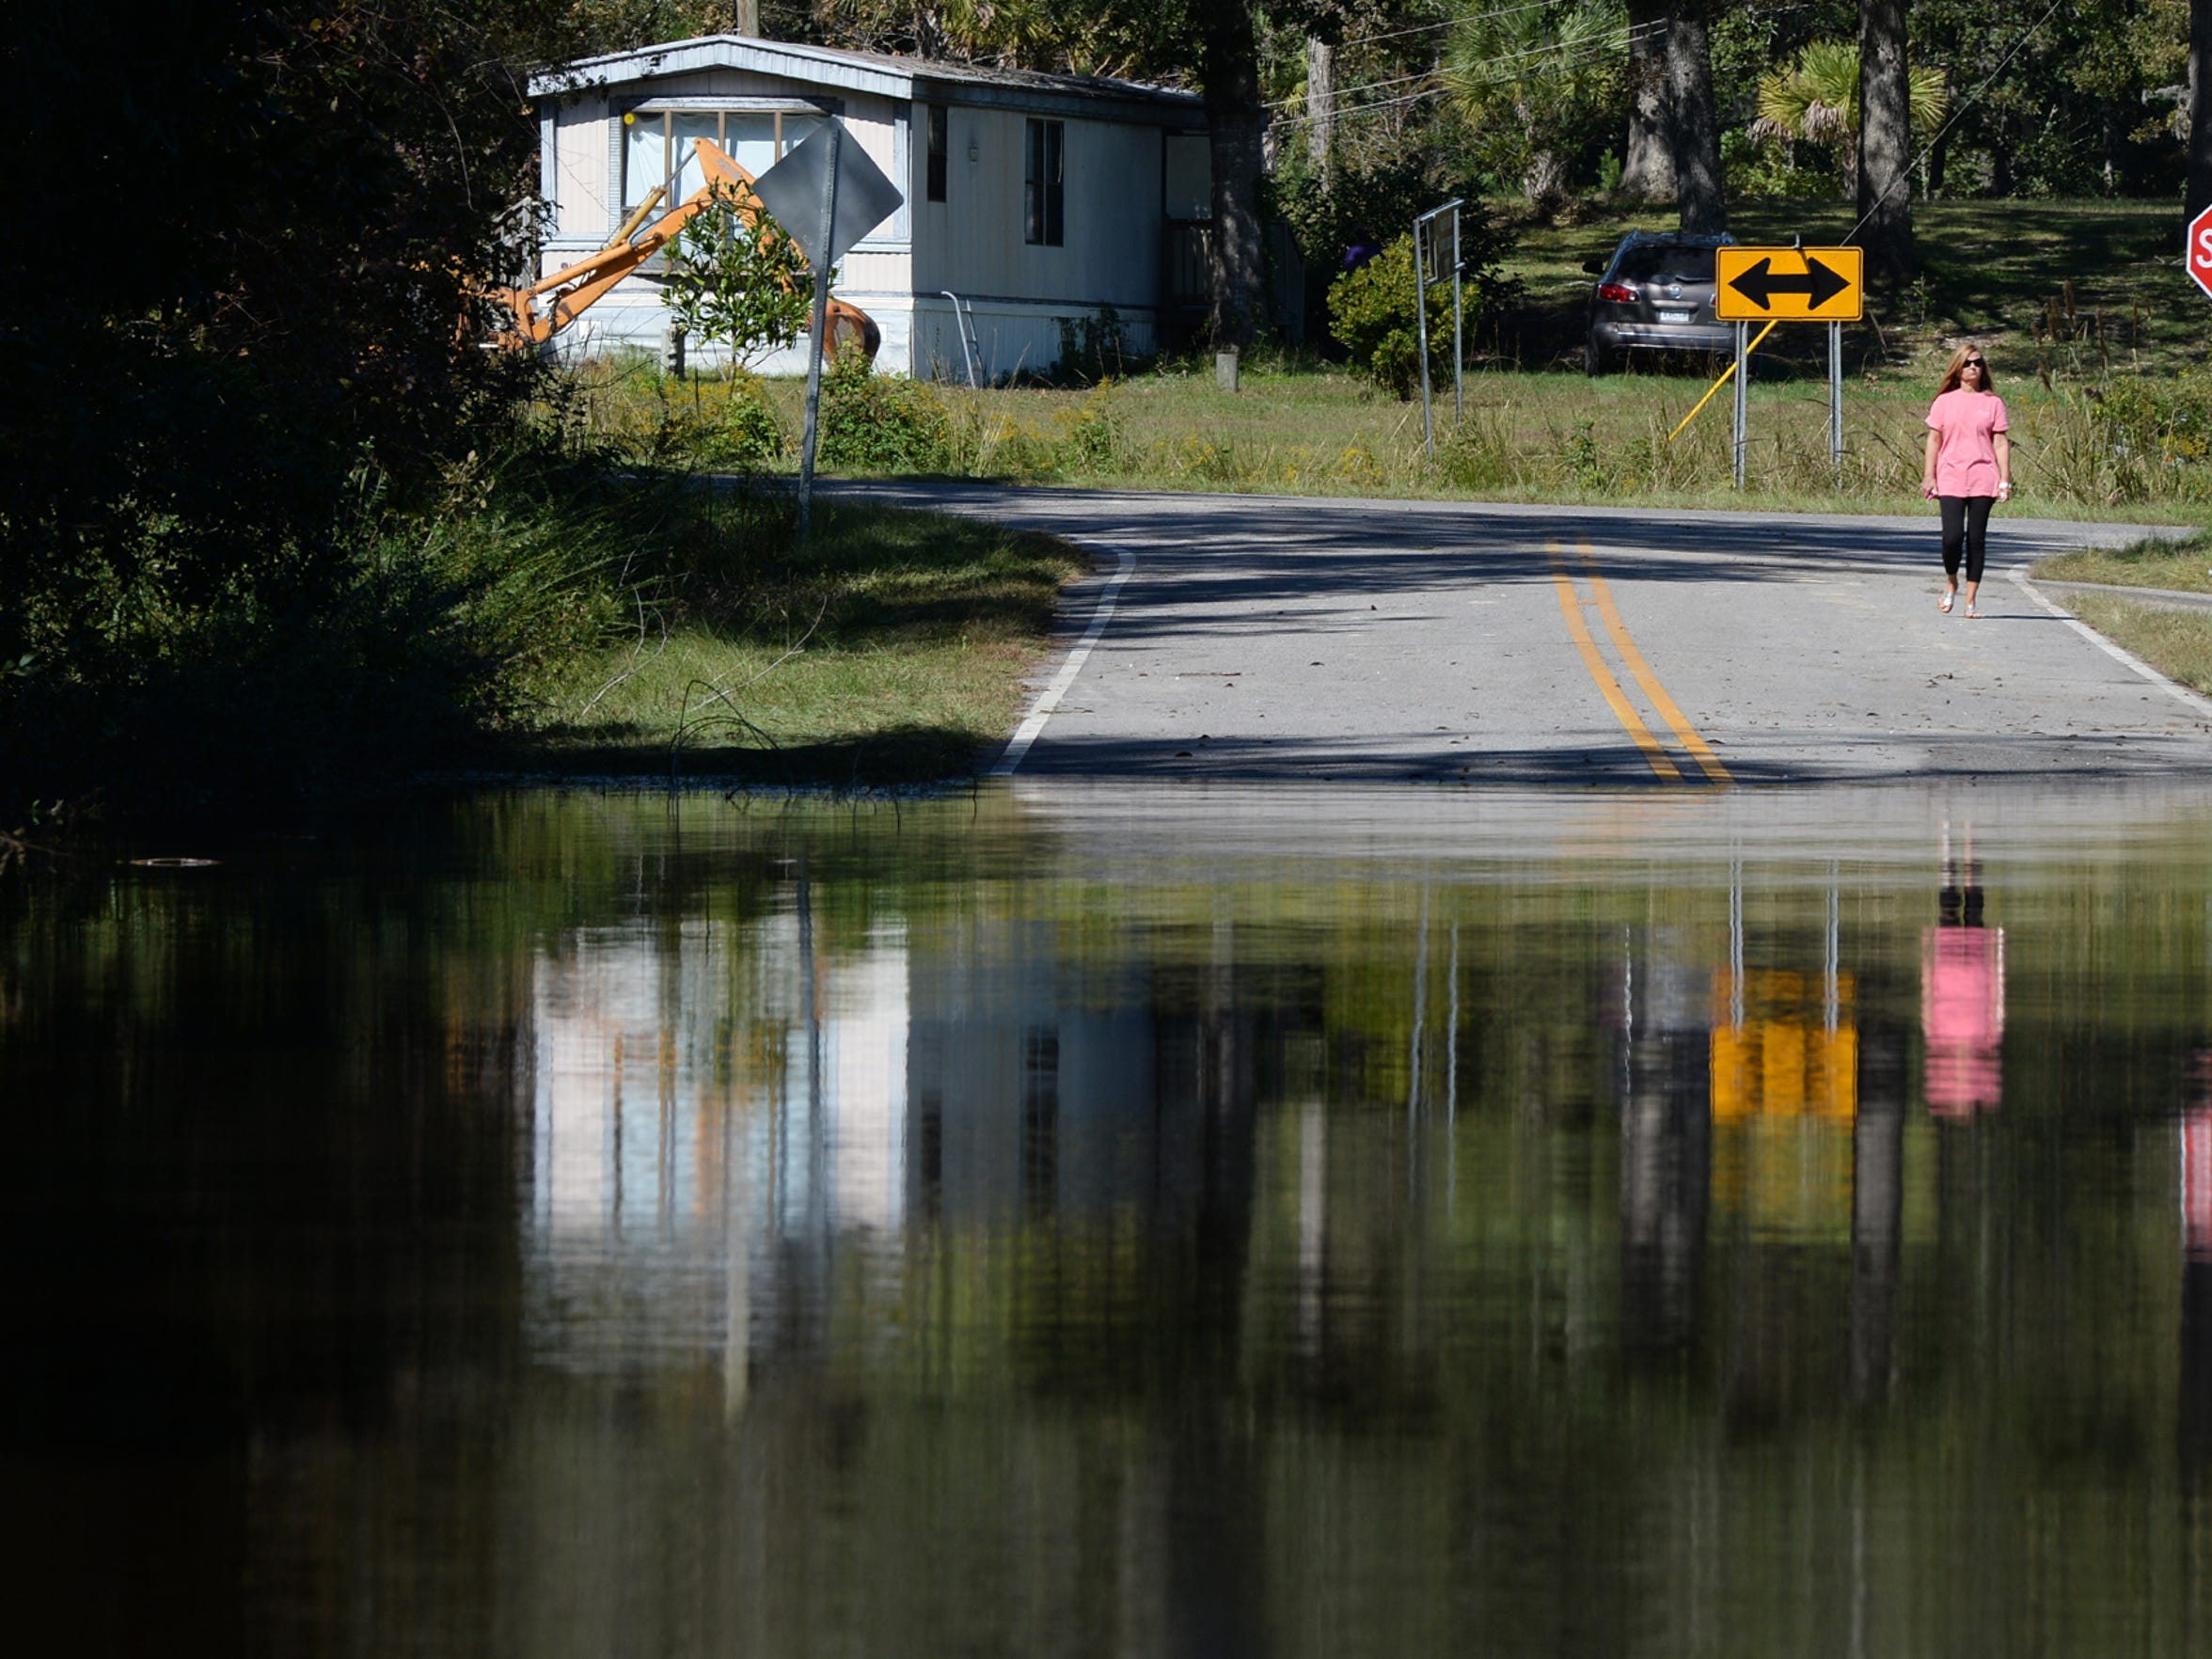 Devastation in the heart of agricultural South Carolina